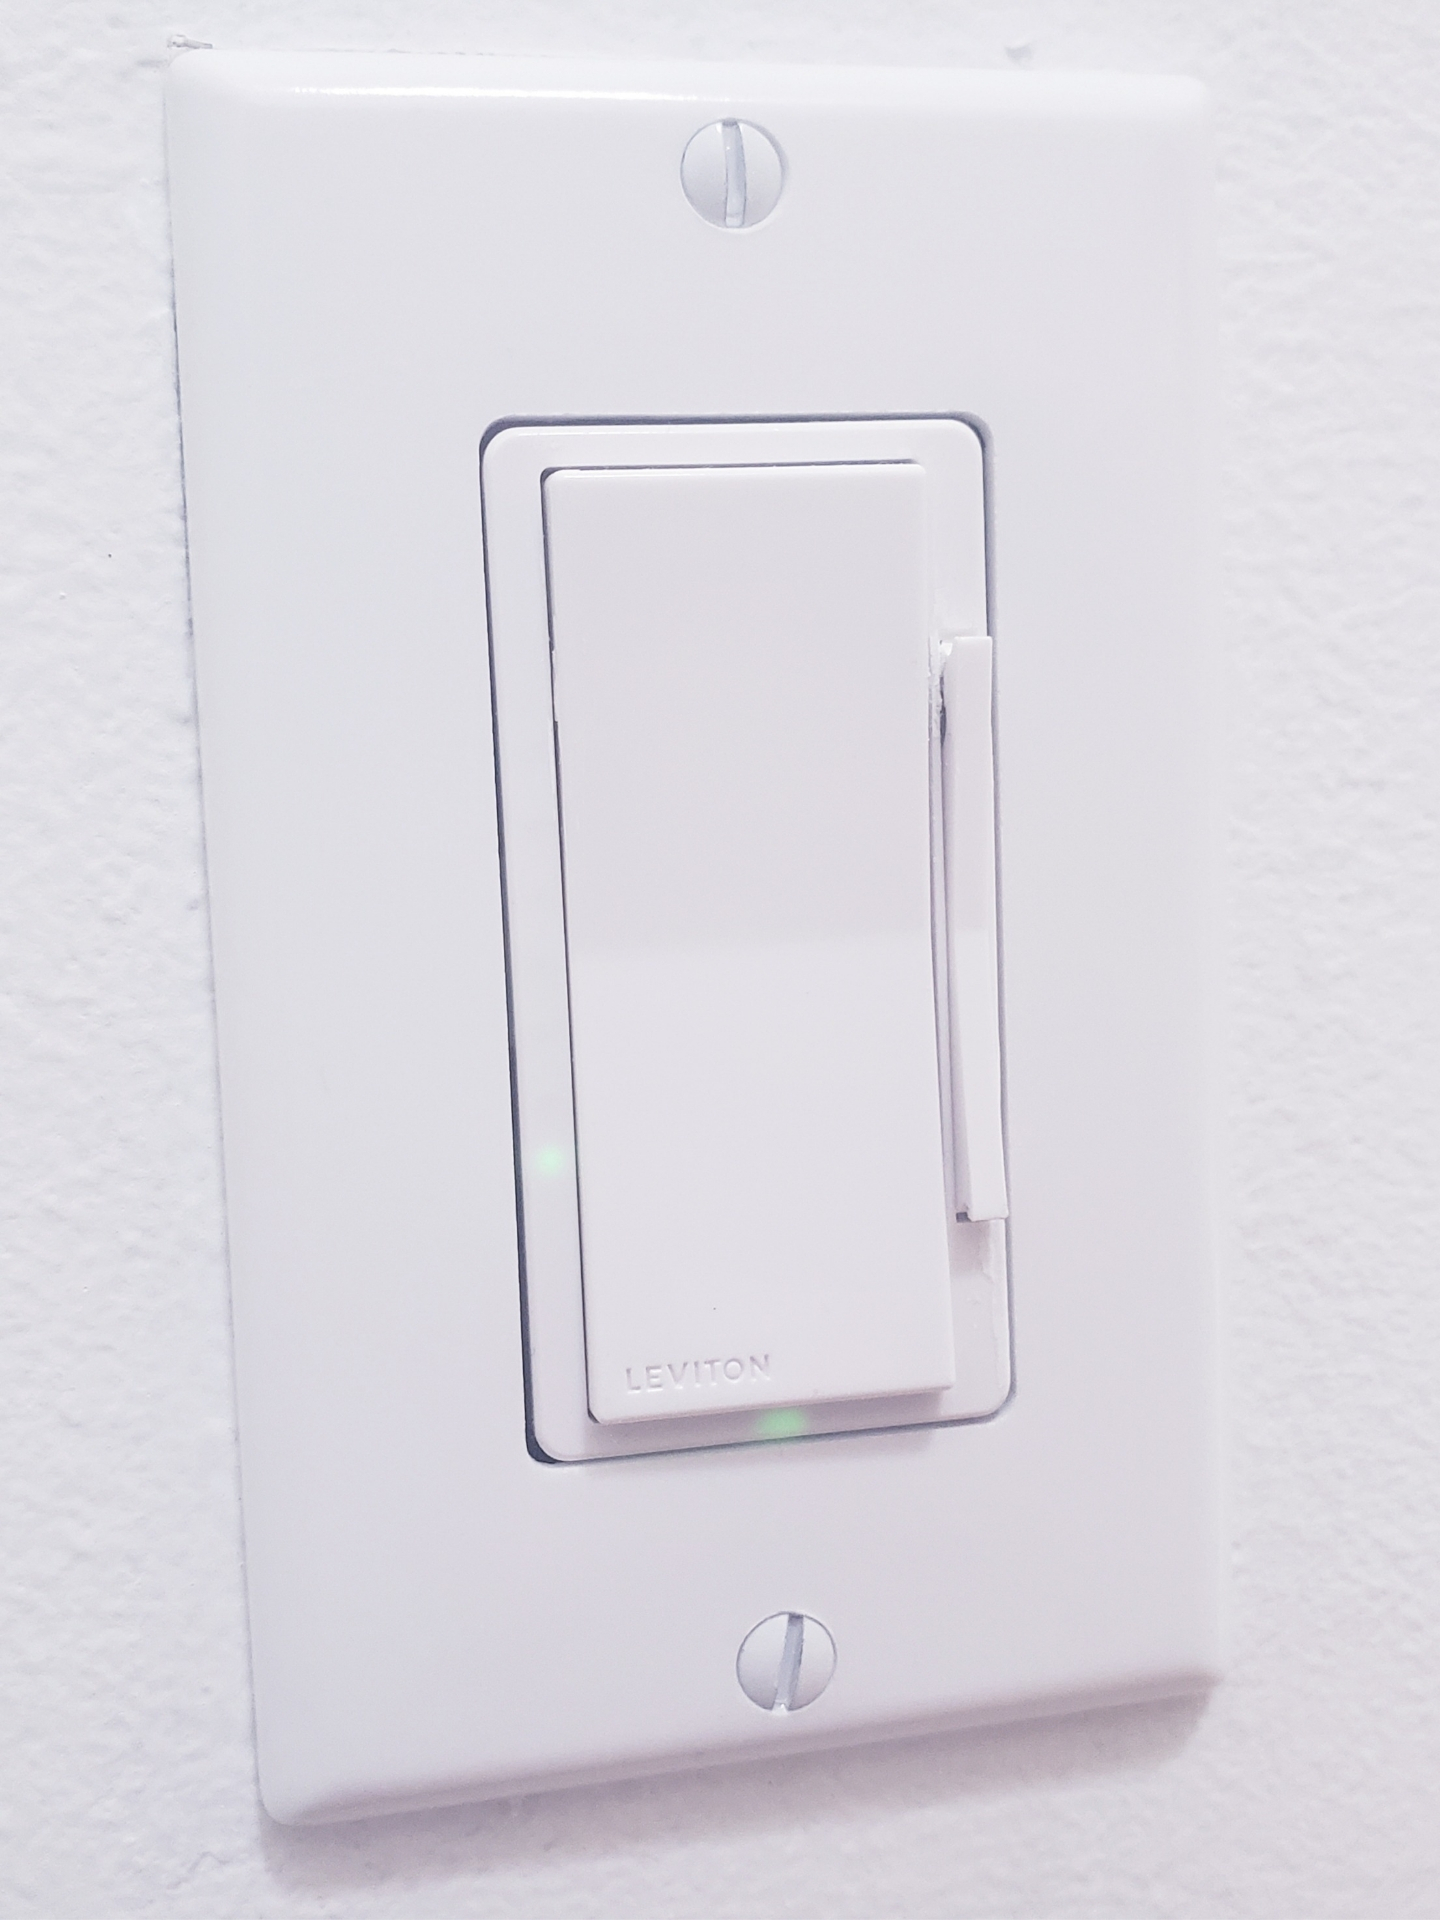 Remote Control Light Switch Installed